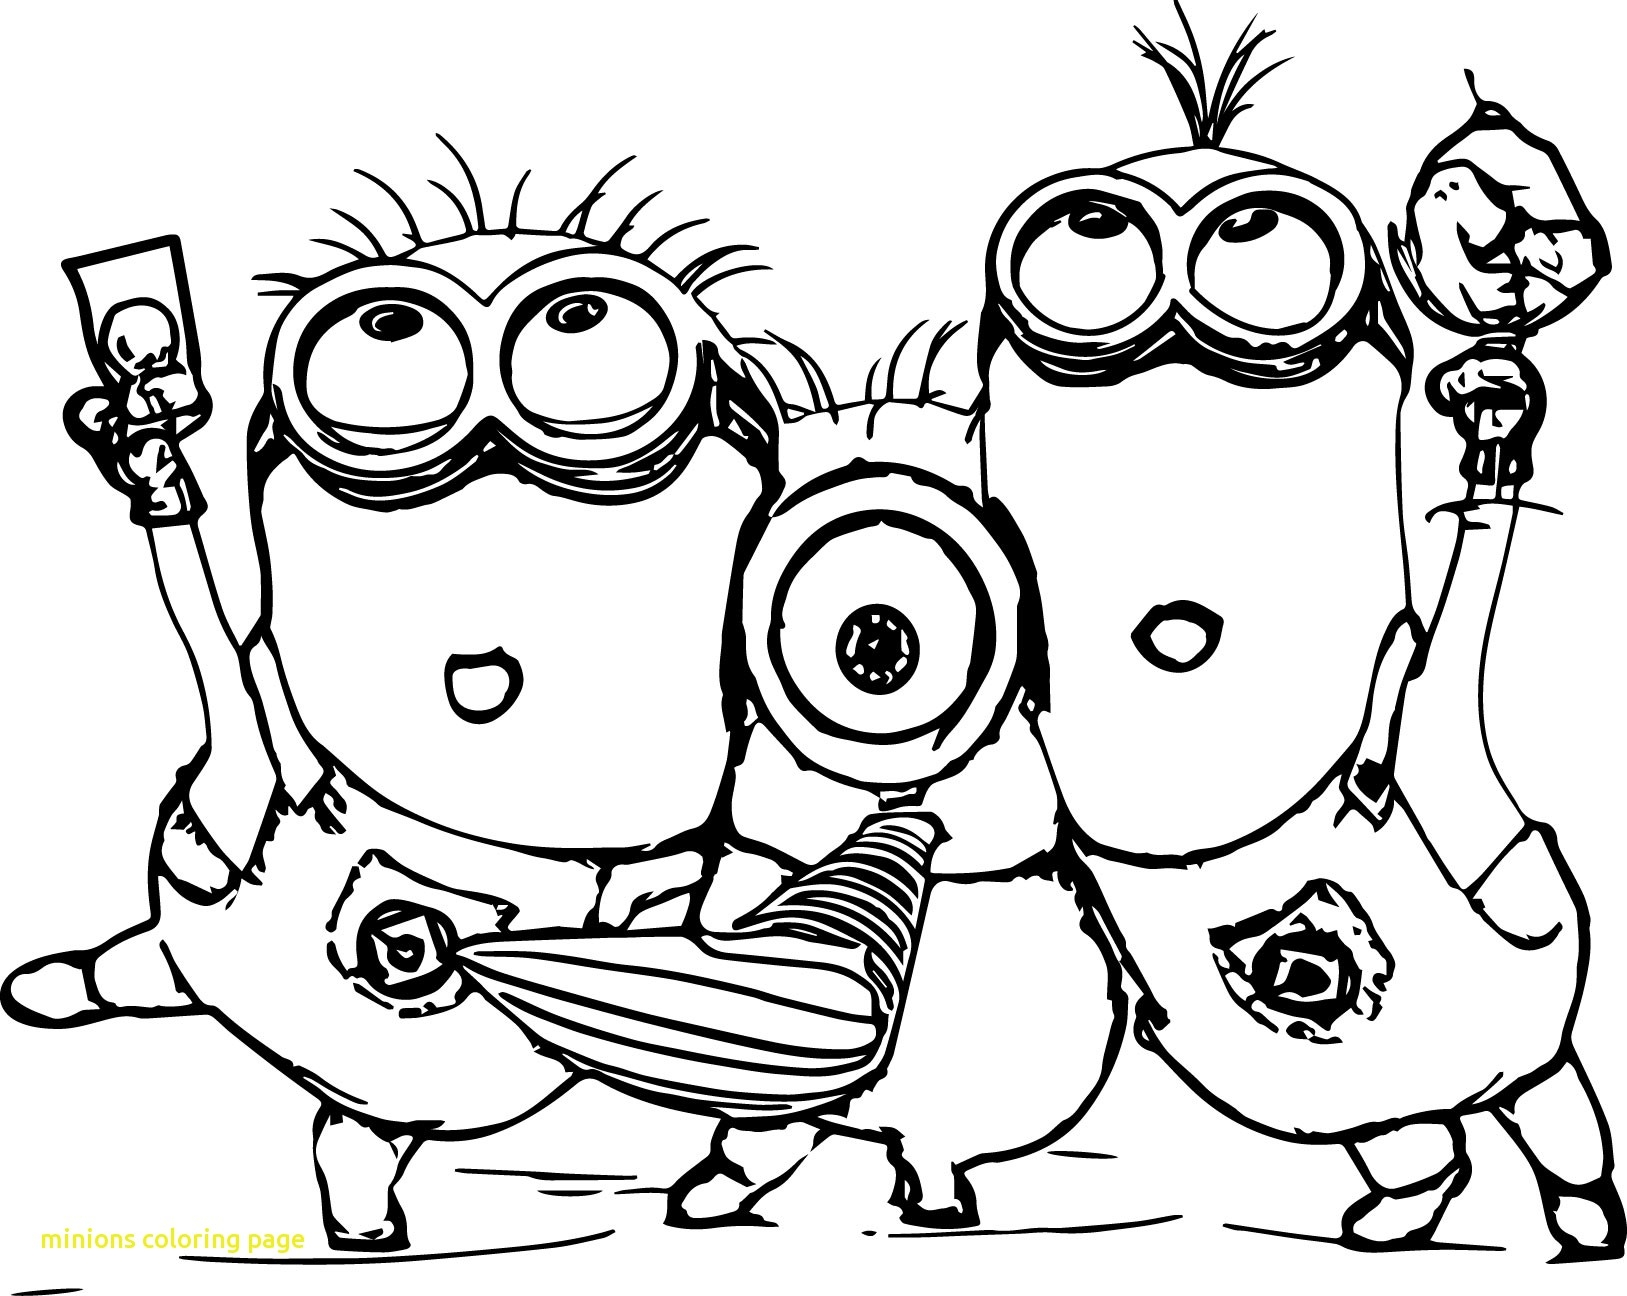 1627x1296 Minion Kevin Coloring Page Minions Color Sheet The Pages To New